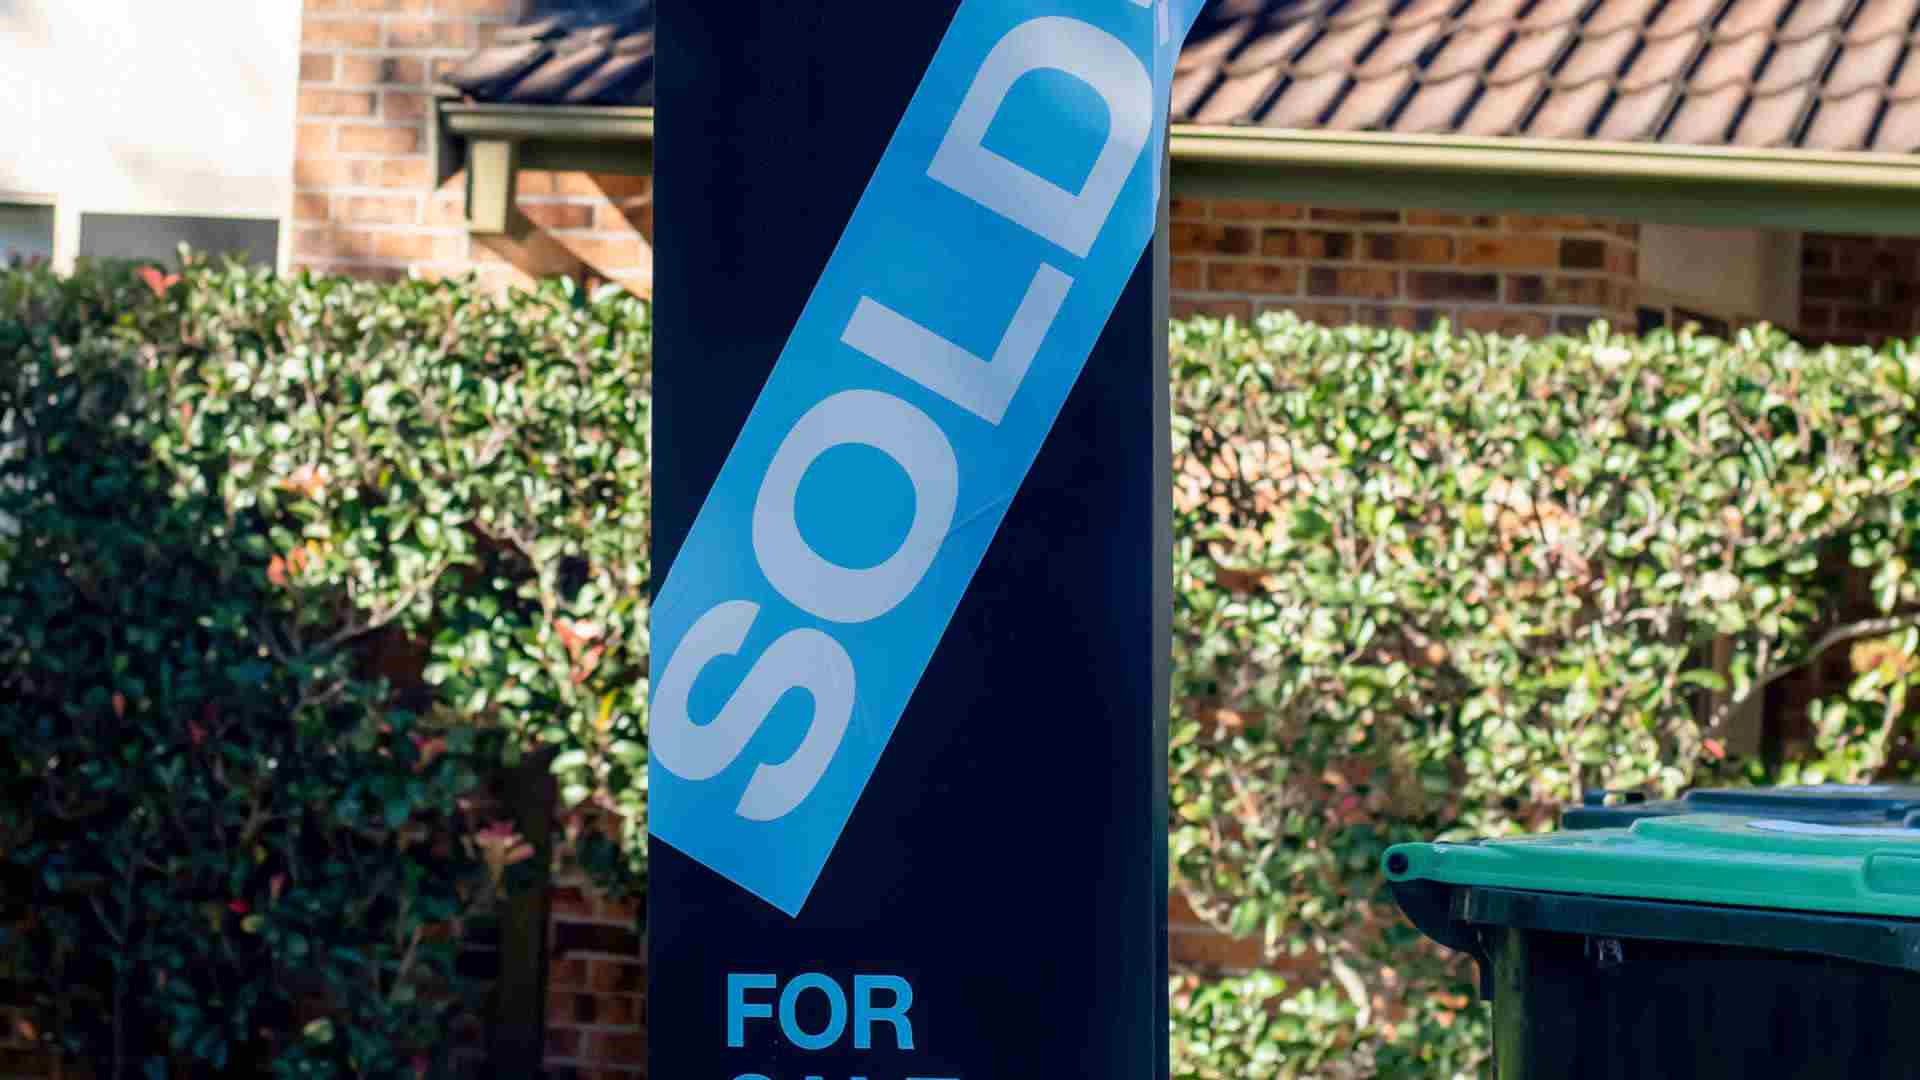 Pumped up house prices dent buyer confidence